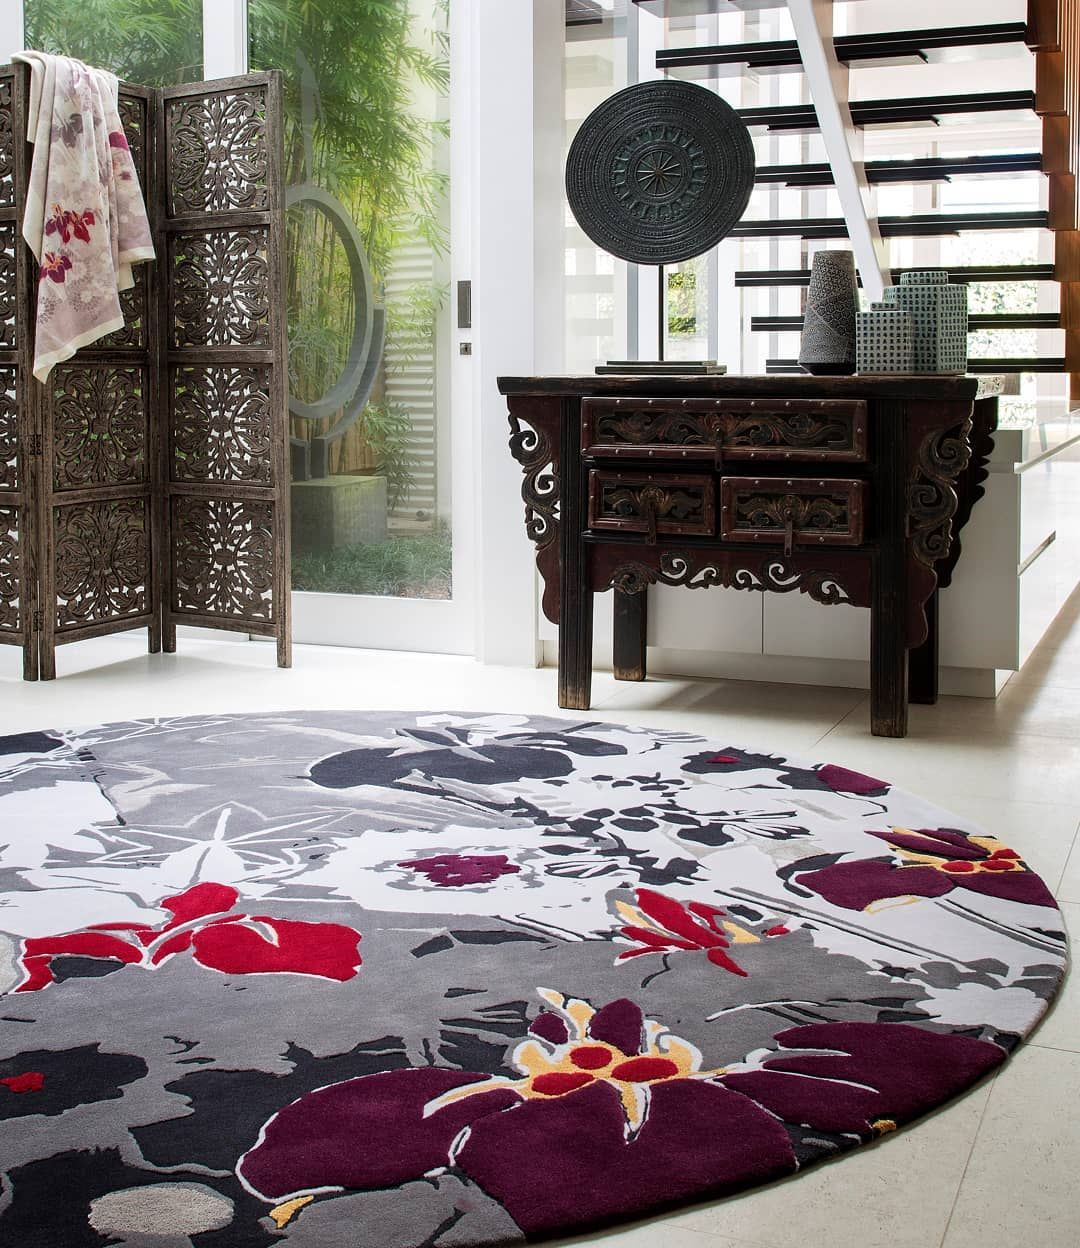 Feathers Rug Collections Designer Rugs Premium Handmade Rugs By Australia S Leading Rug Company Rug Design Carpet Design Rugs